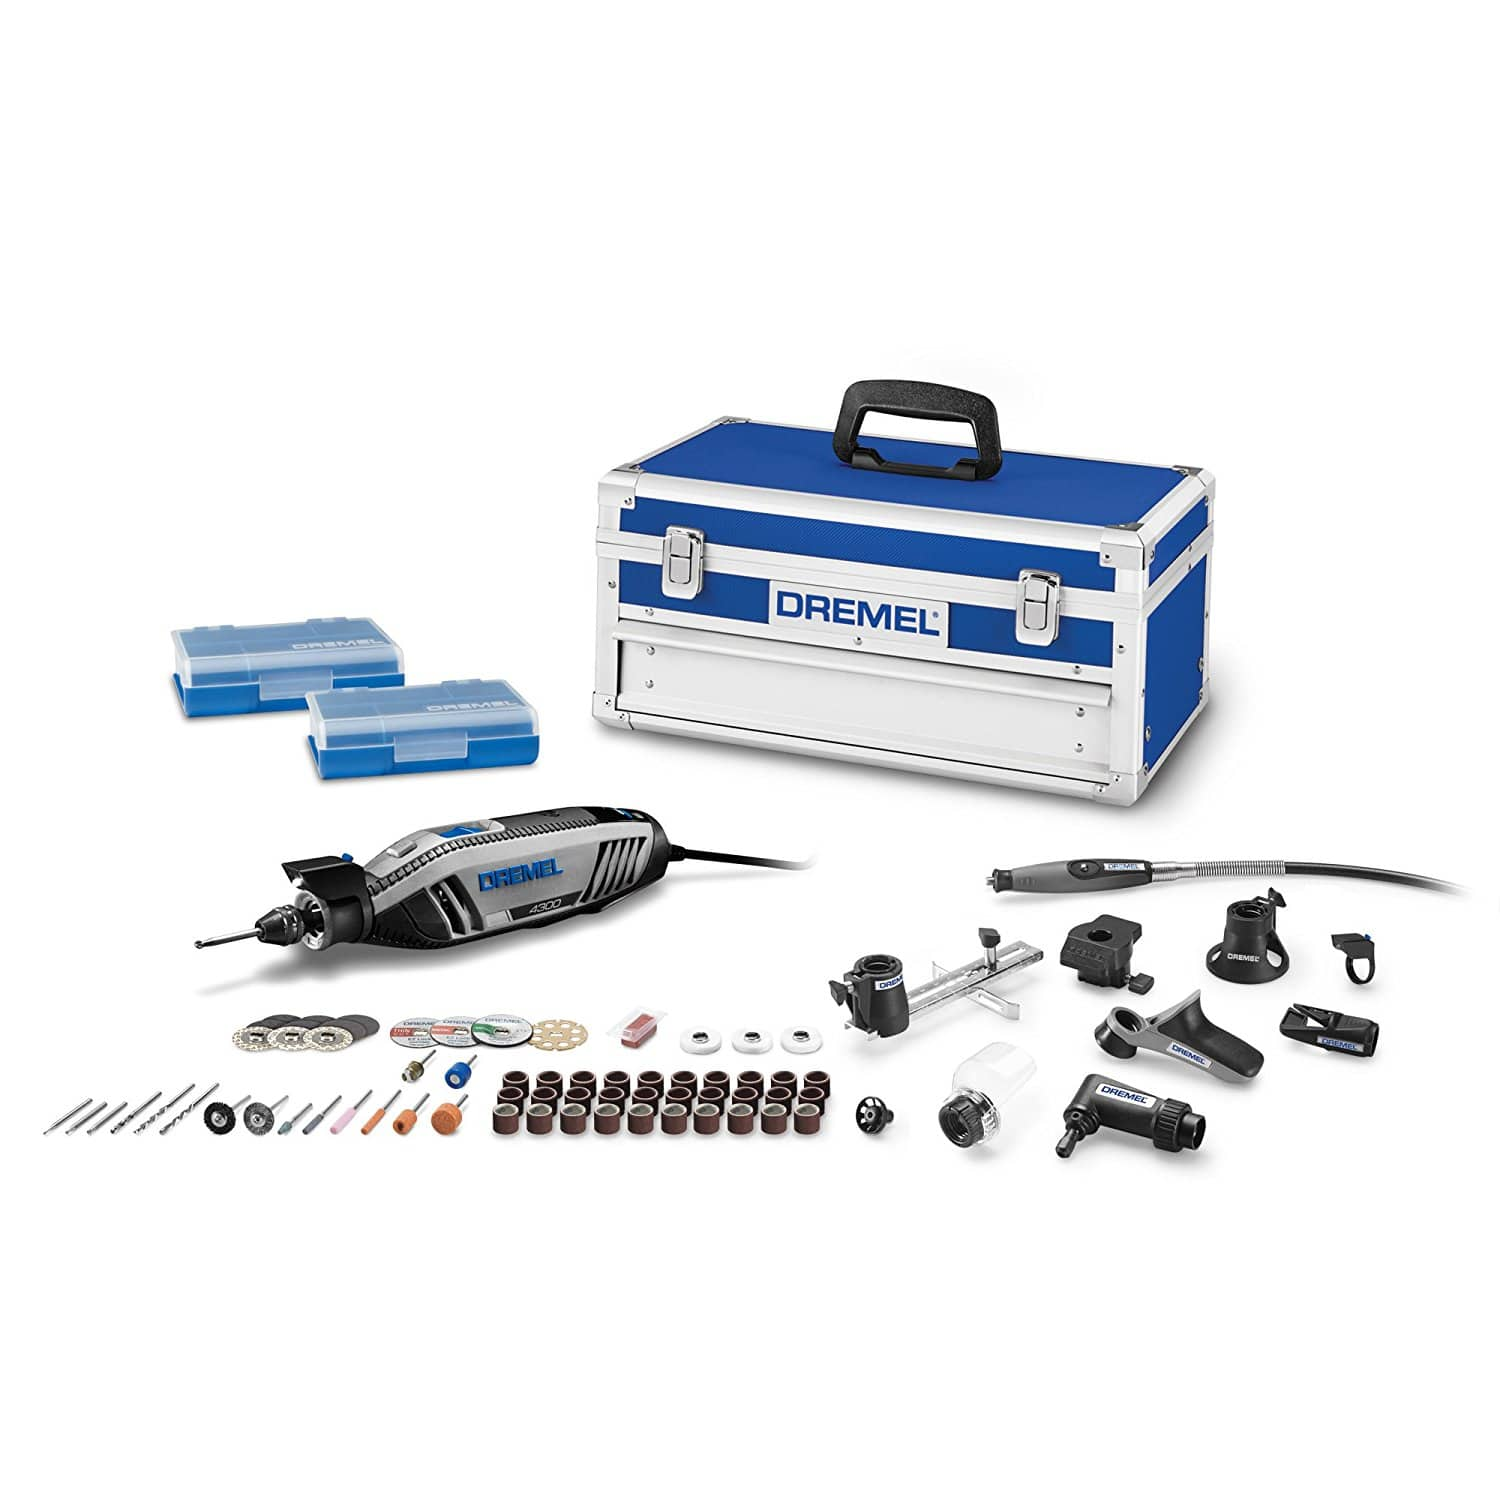 Dremel 4300-9/64 High Performance Rotary Tool Kit with Universal 3-Jaw Chuck, 9 Attachments and 64 Accessories - $99